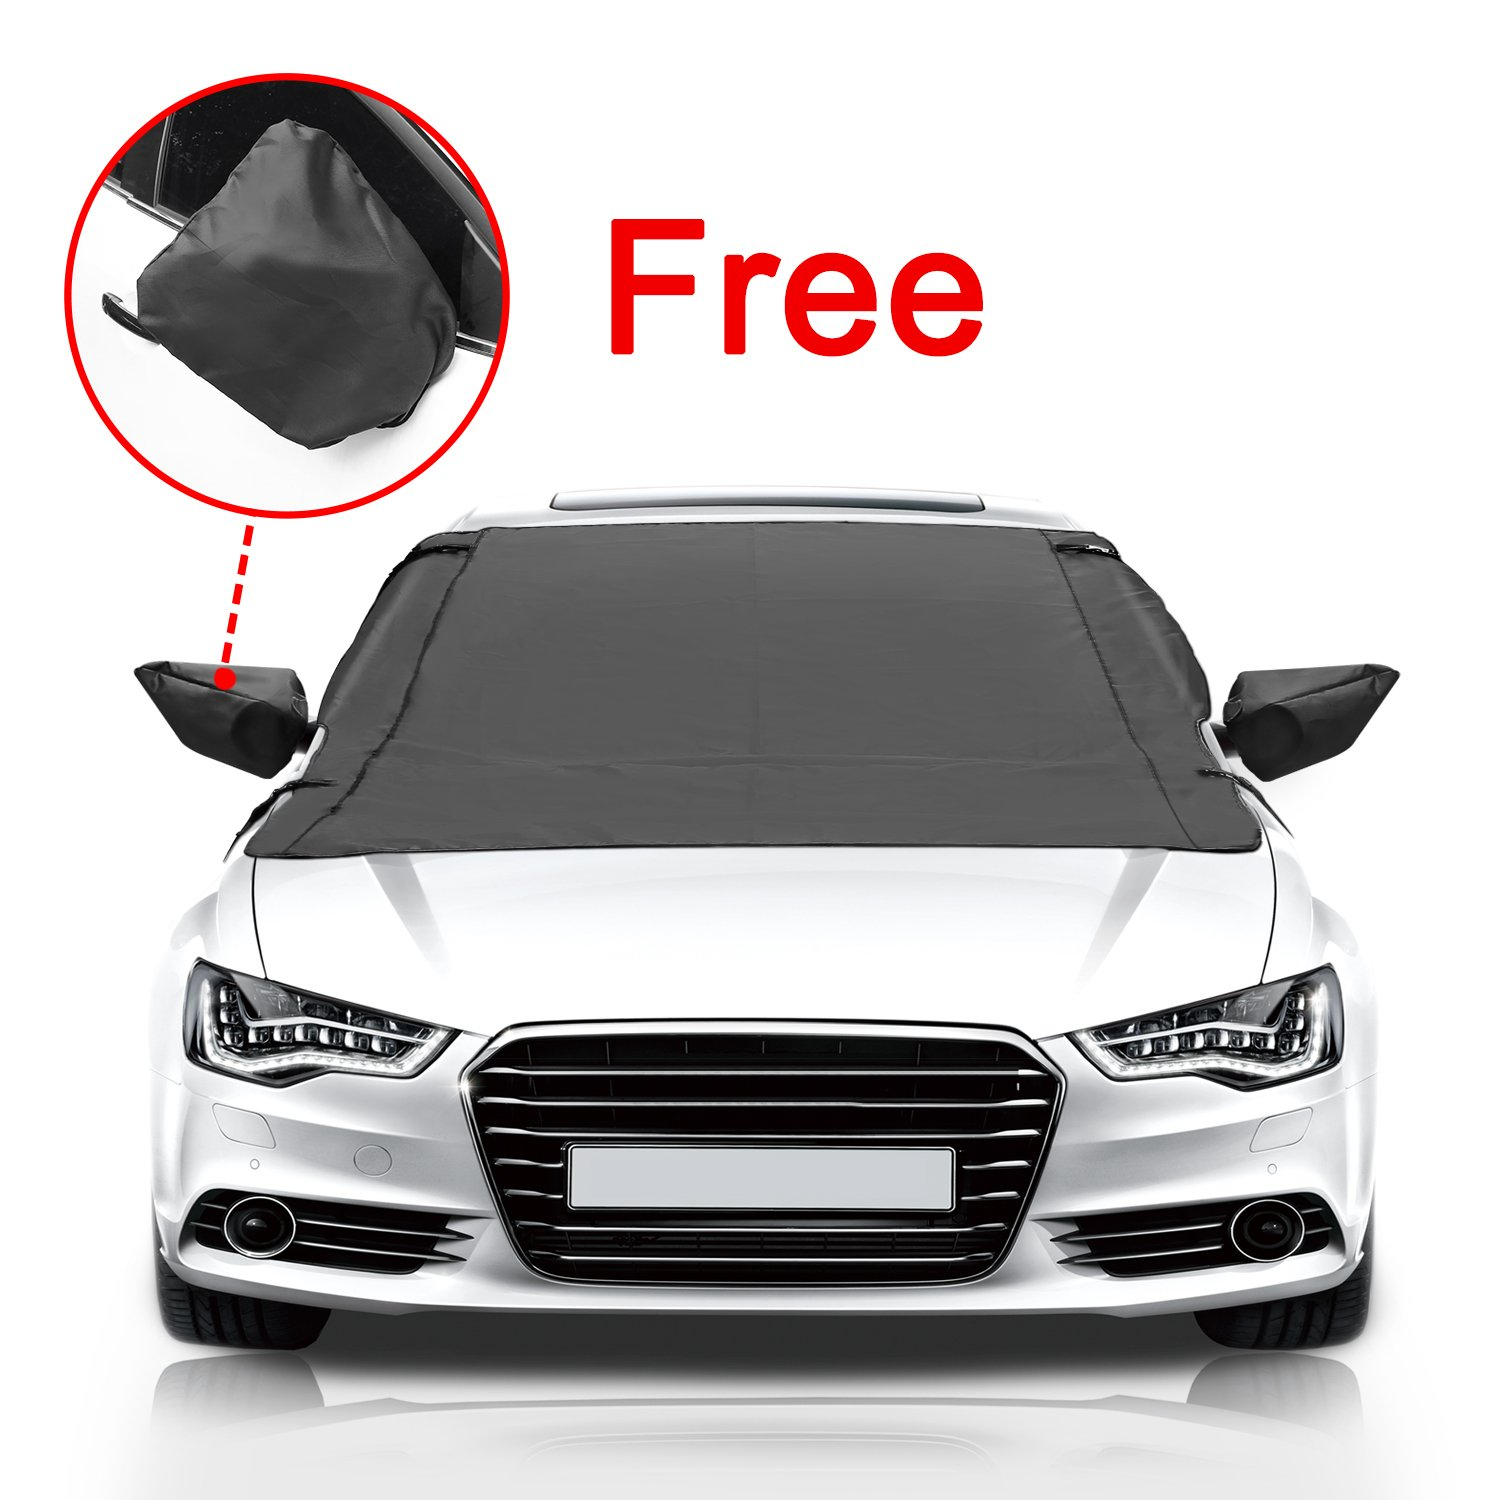 Silver Fit for Cars Dealpeak Windshield Cover Trucks and SUVs Car Windshield Snow Cover /& Sun Shade Protector with Magnet